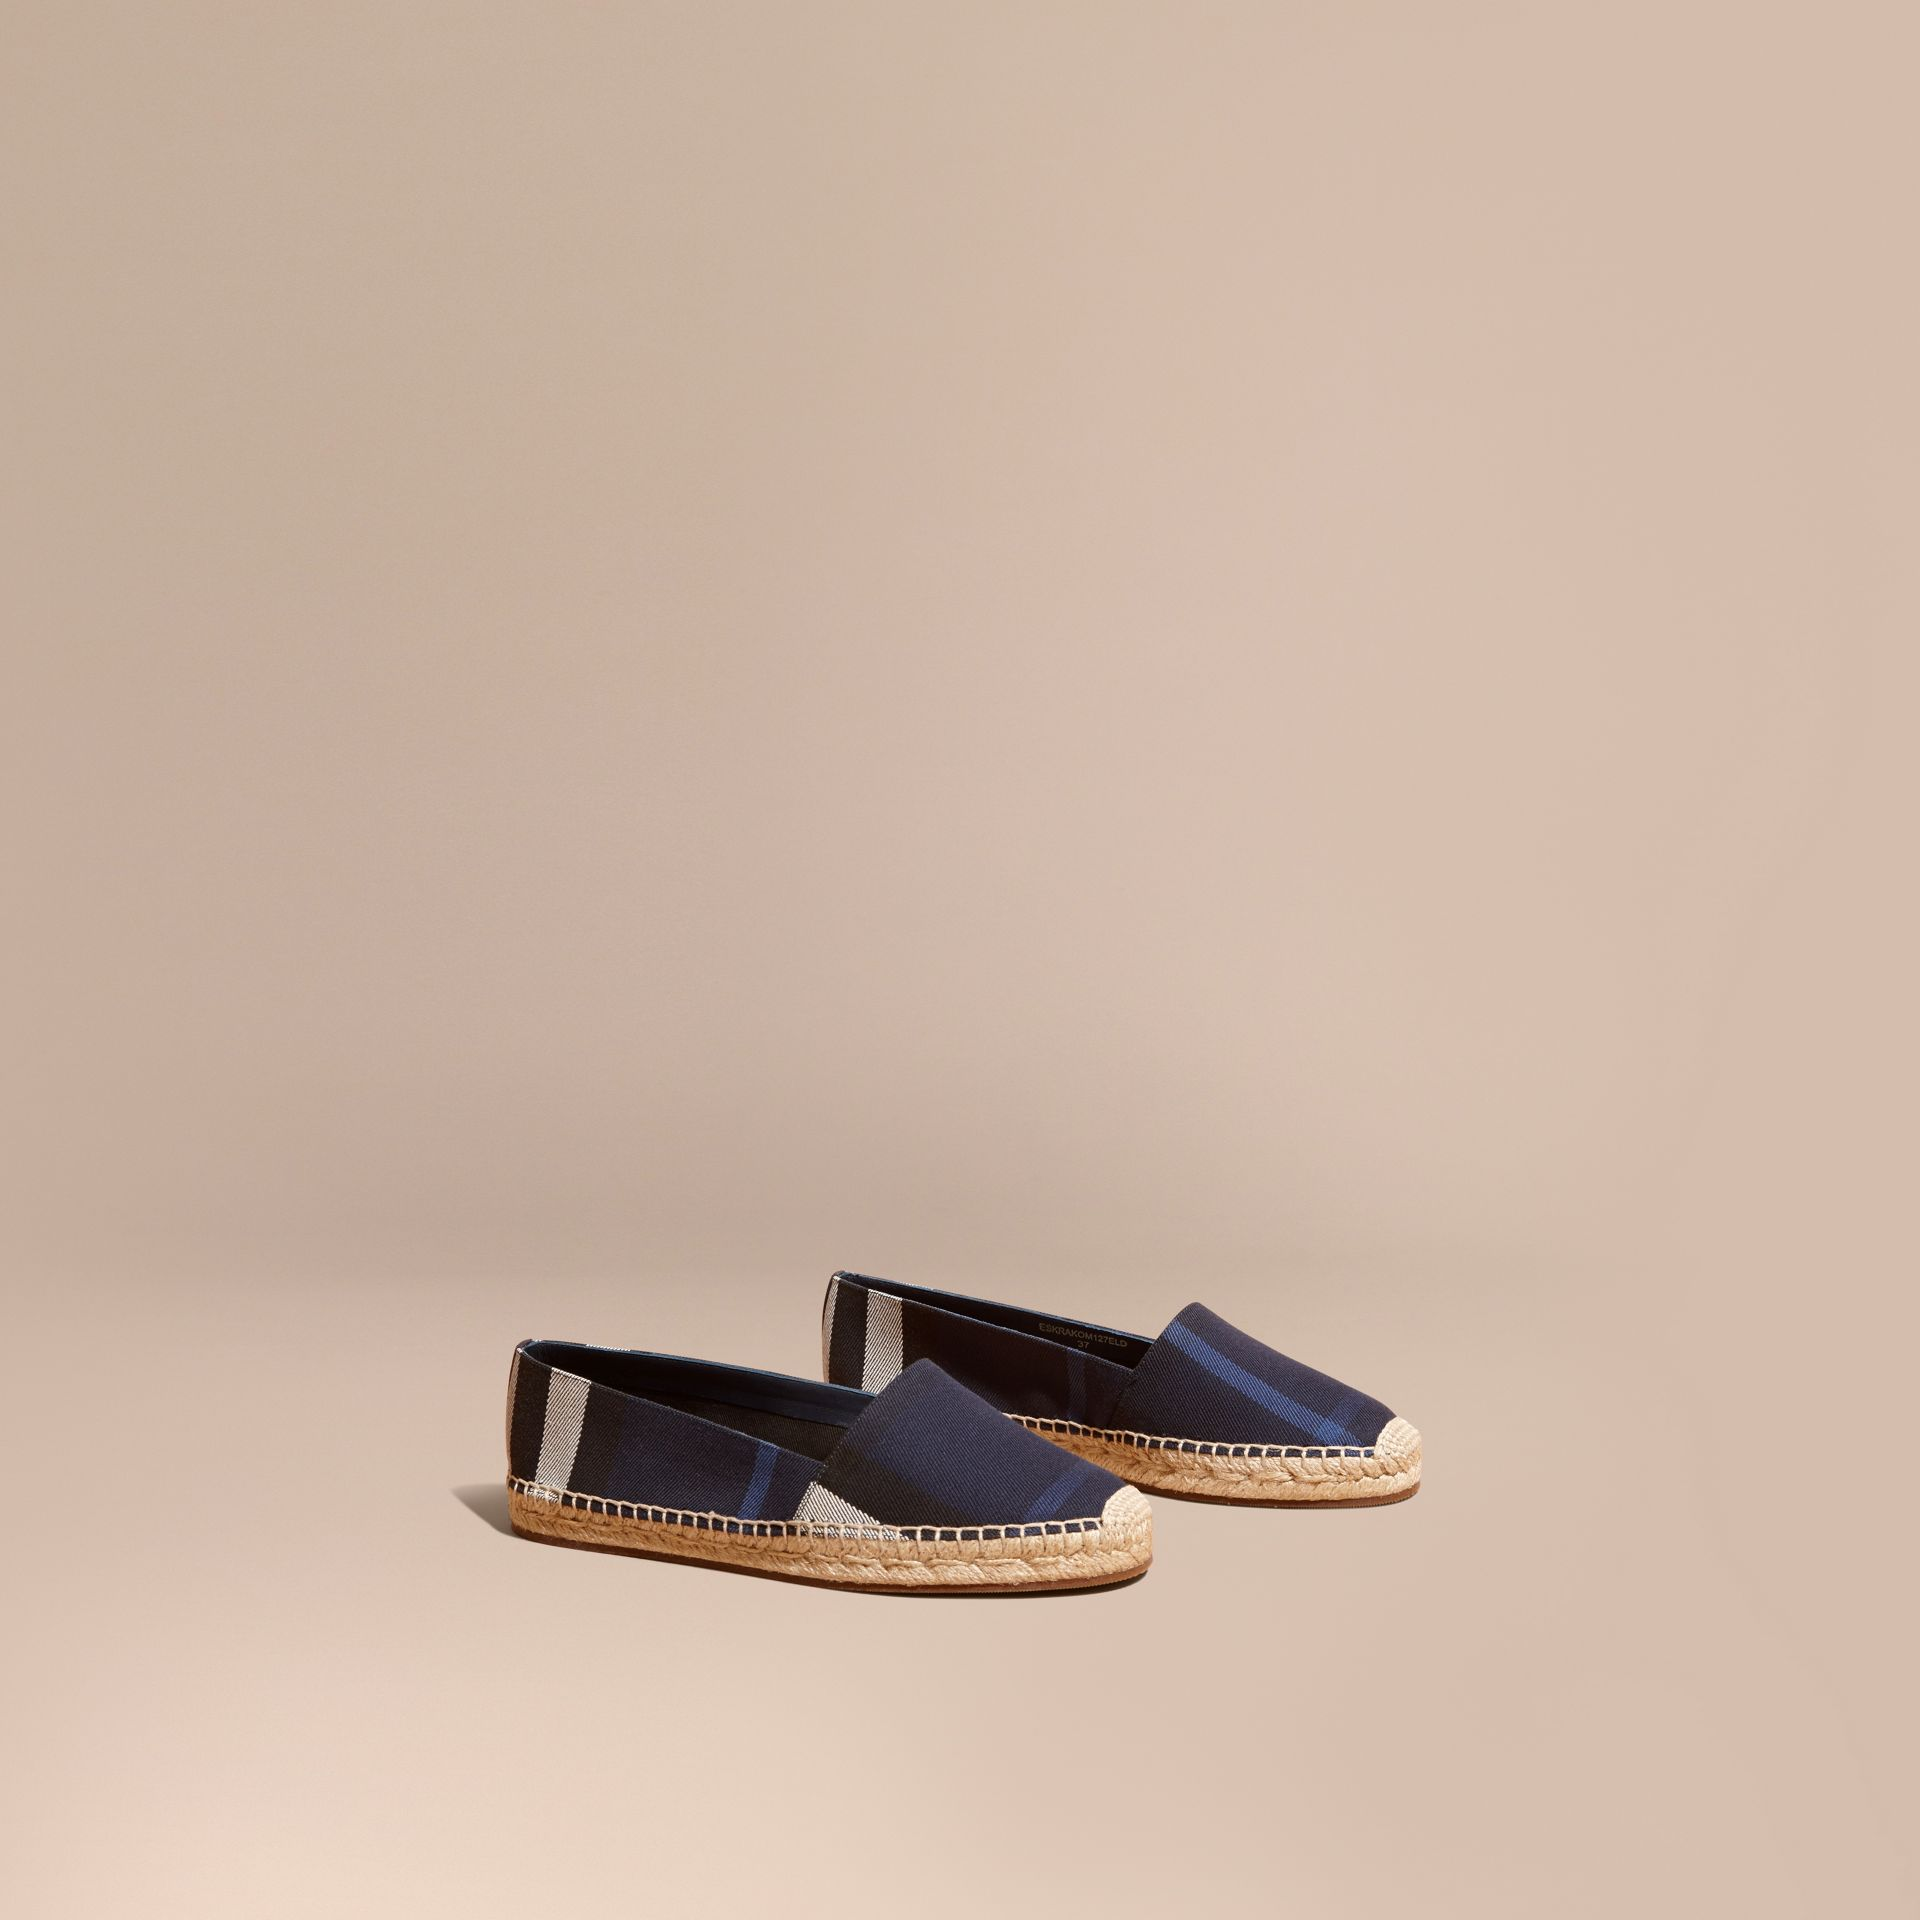 Leather Trim Canvas Check Espadrilles - Women | Burberry - gallery image 1